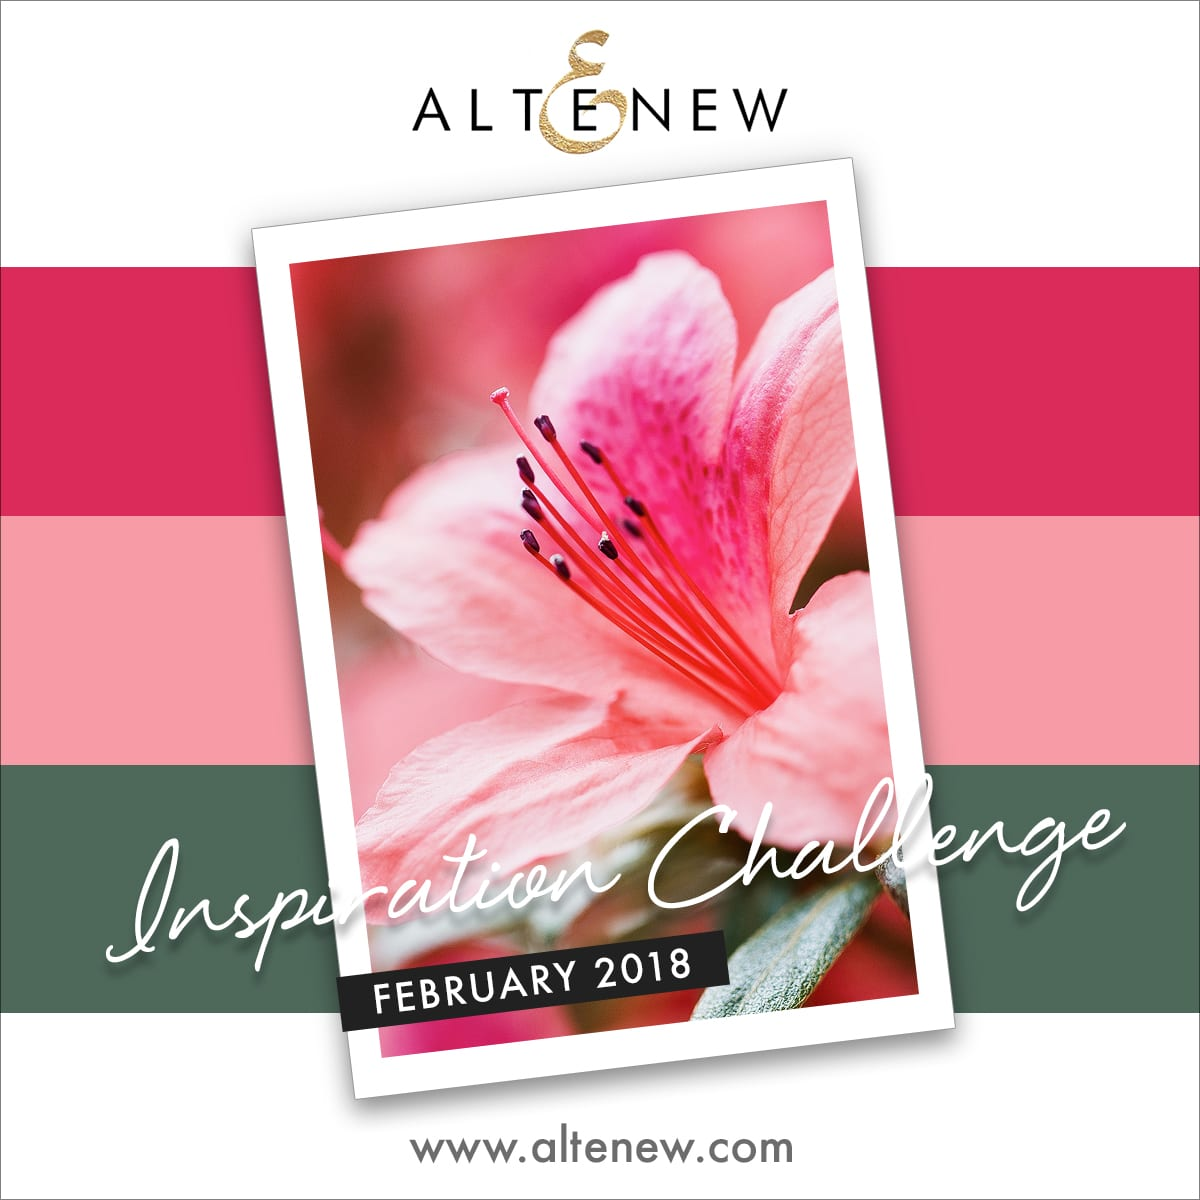 Altenew February Inspiration Challenge with photo and inspiration by Debby Hughes. Find out more here: http://wp.me/p6Dps1-5Ec